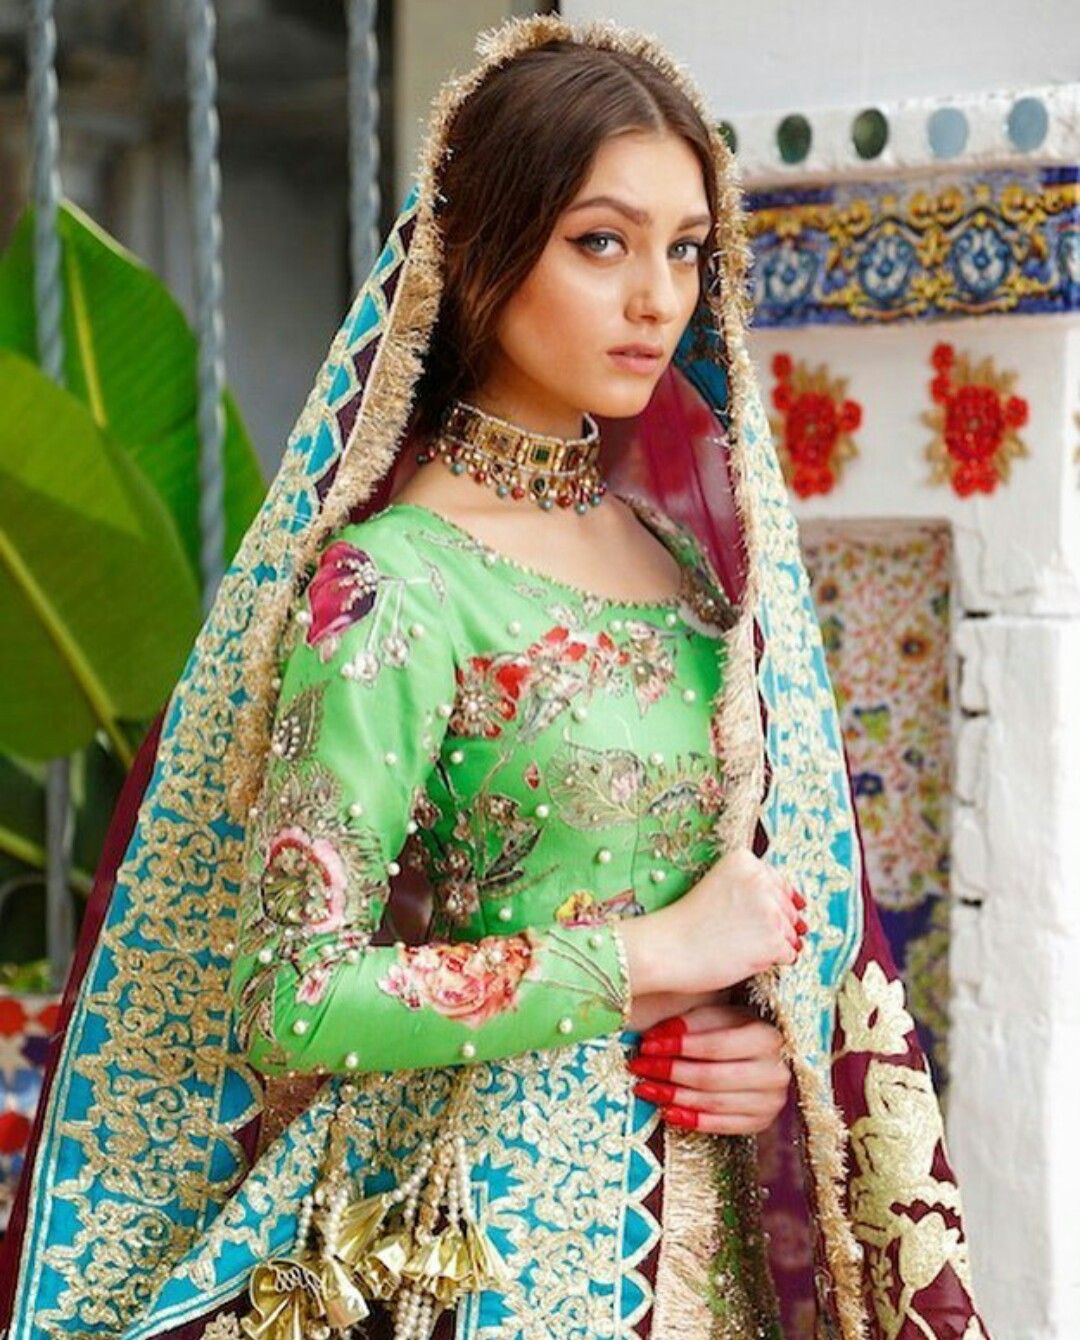 South asian wedding dresses  Pin by Sohaib roomi on Bridal  Pinterest  Pakistani Asian wedding